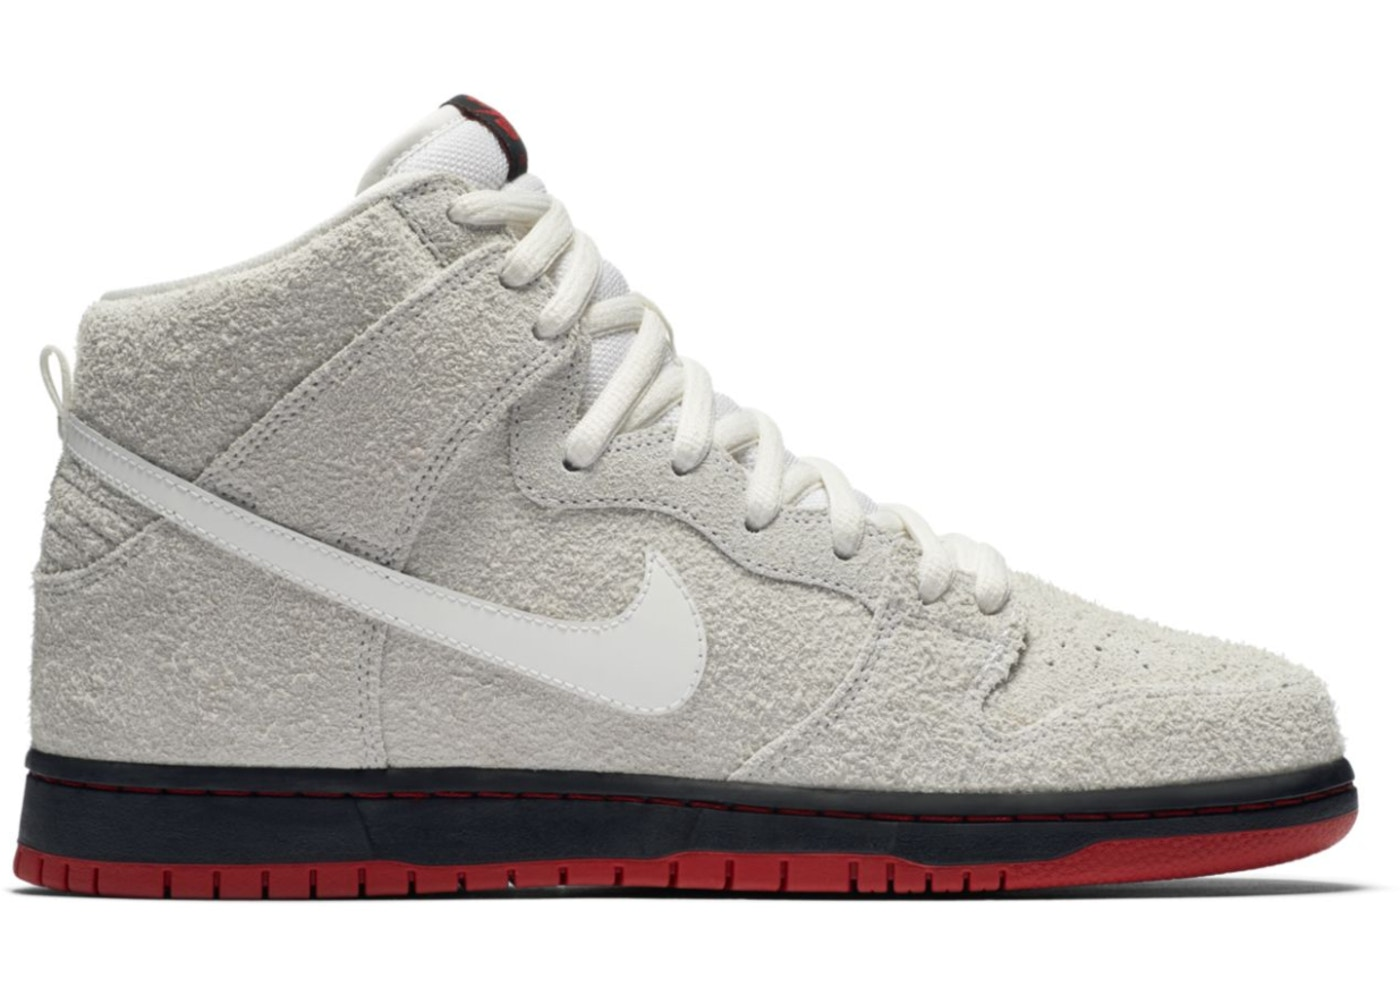 new arrival ce056 66af5 Nike Dunk SB High Wolf In Sheep s Clothing (Deluxe Set W  Accessories)